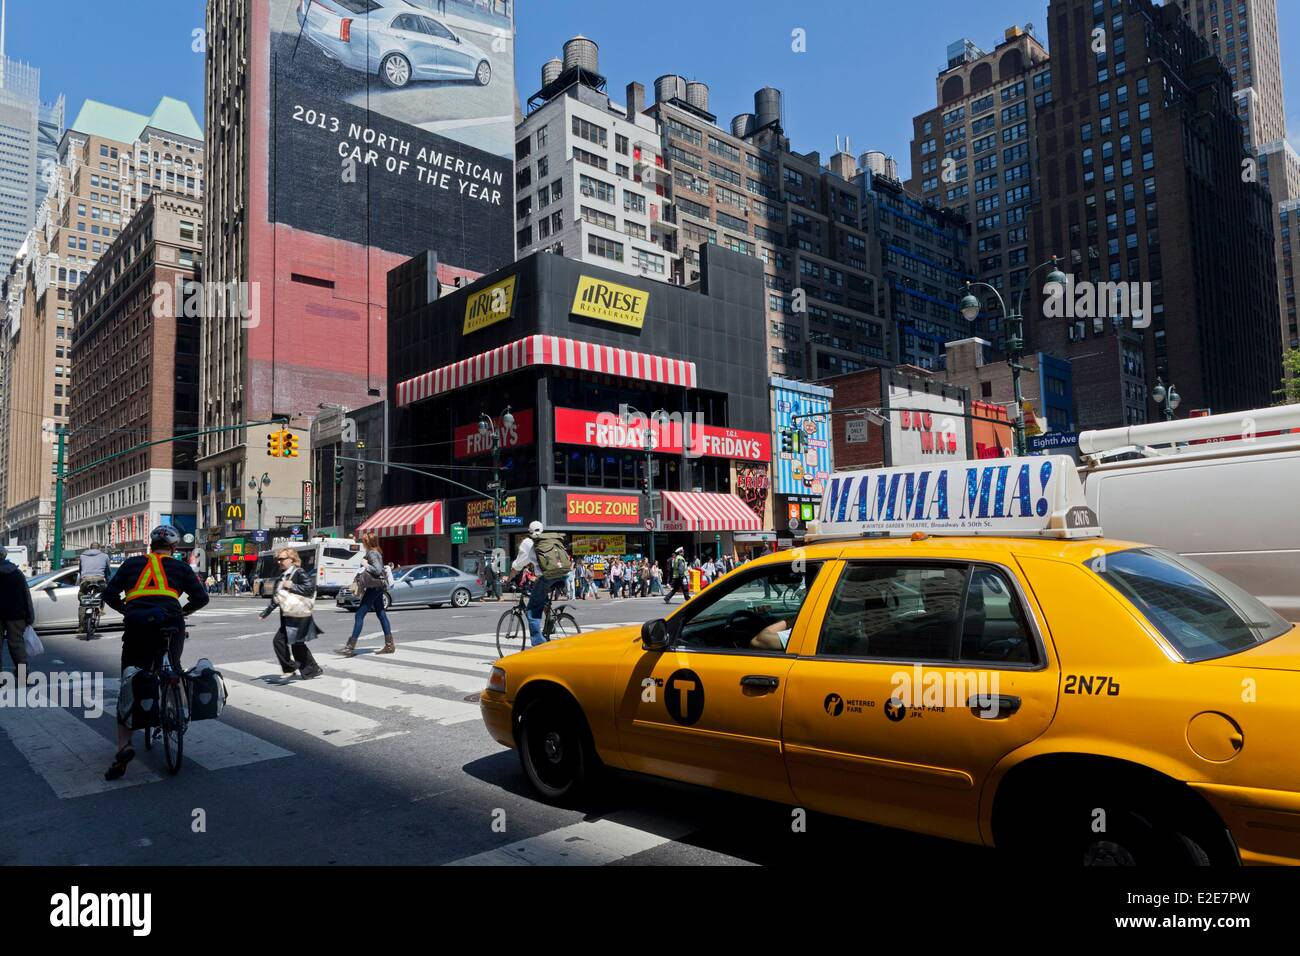 United States, New York, Manhattan, Midtown, 34th Street intersection with 8th Avenue, the heart of the town - Stock Image